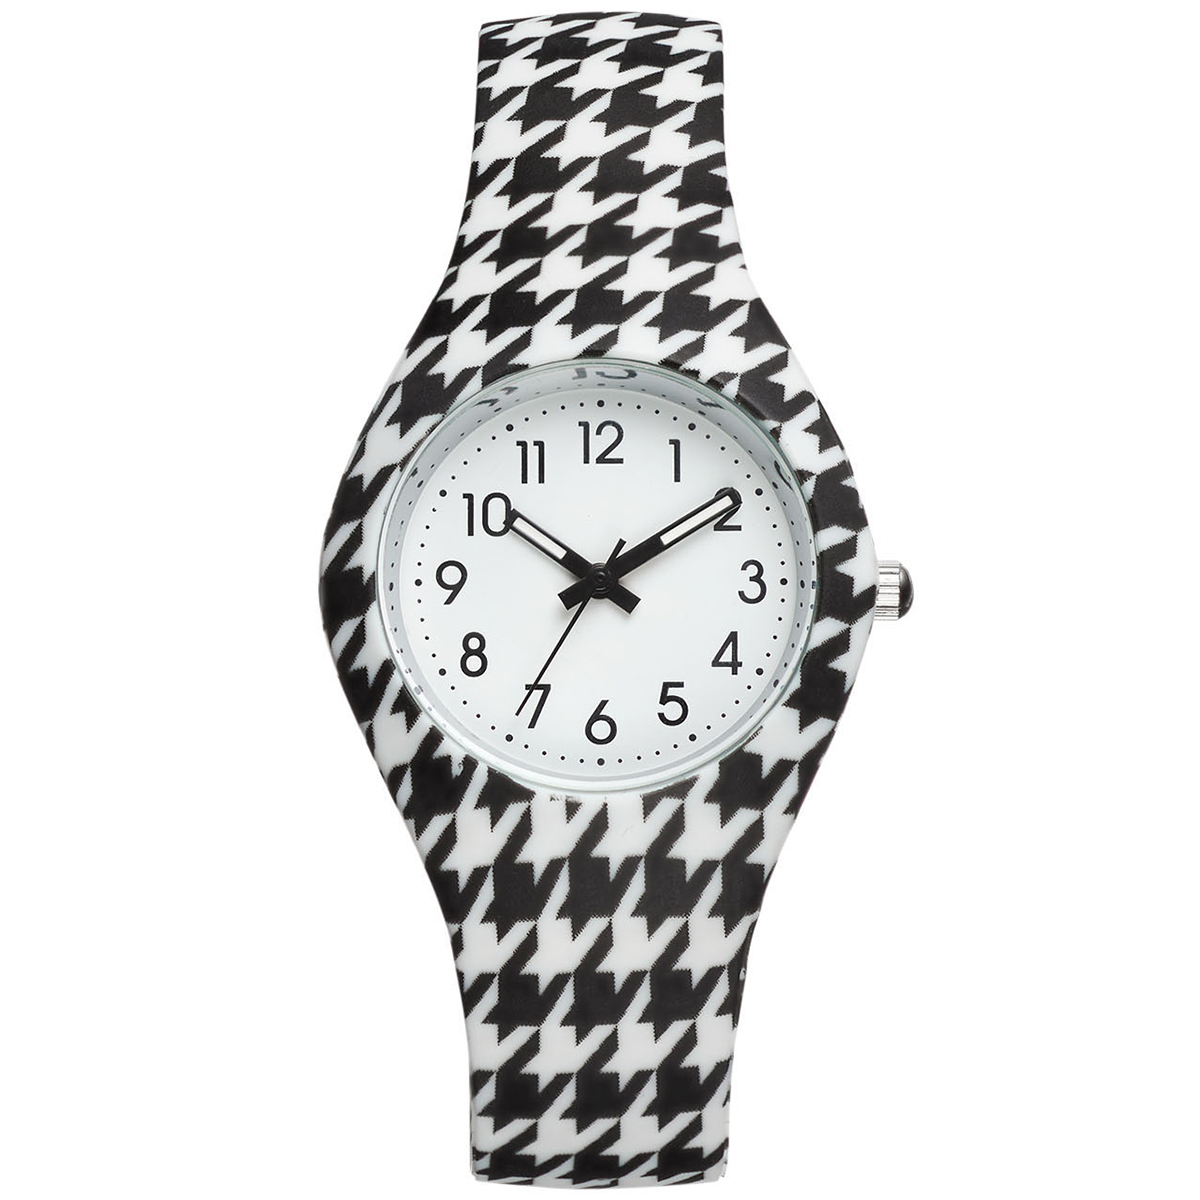 Women's Houndstooth Watch by Kohl's